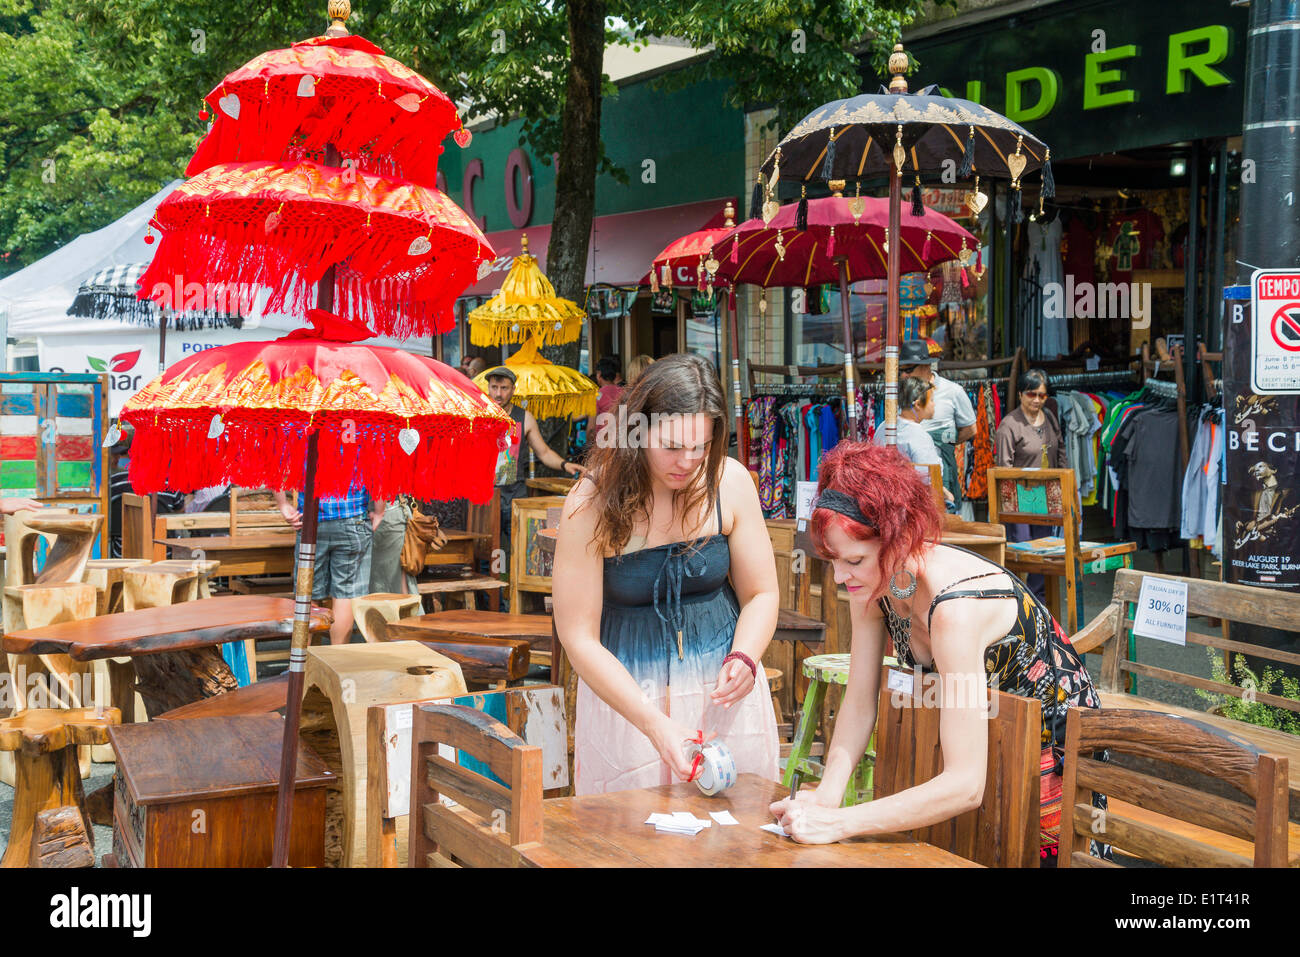 Outdoor furniture and parasol sidewalk sale, Commercial Drive, Vancouver, British Columbia, Canada - Stock Image